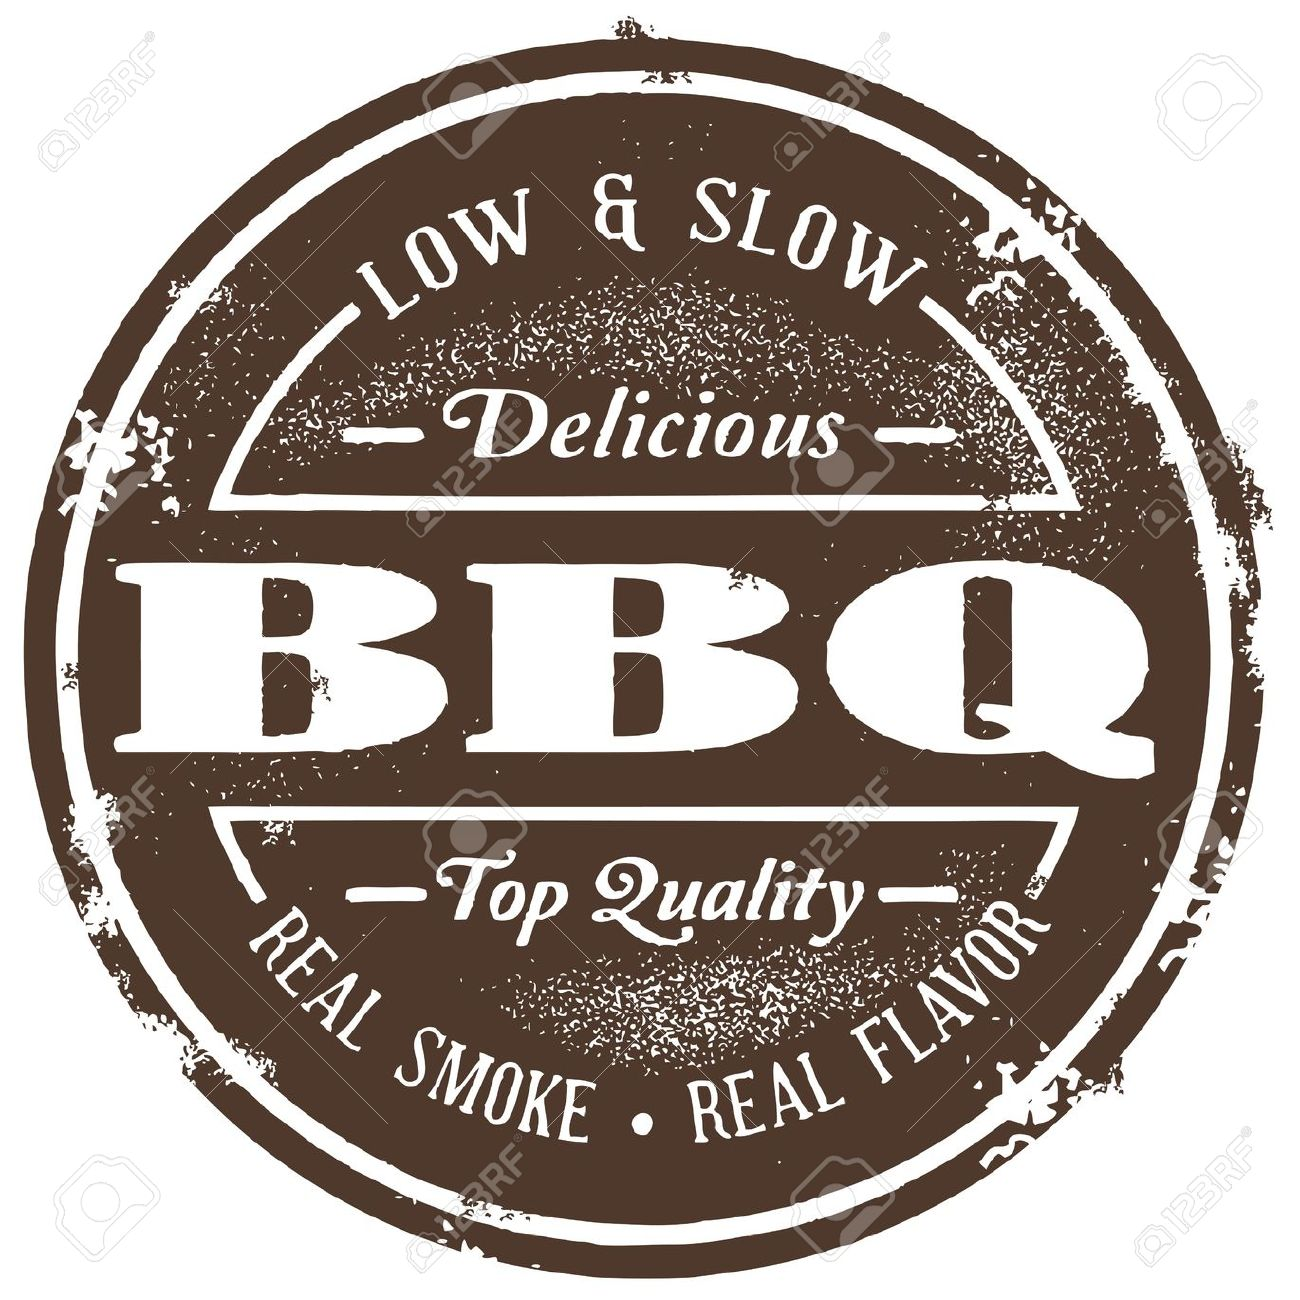 Bbq smoke silhouette clipart.